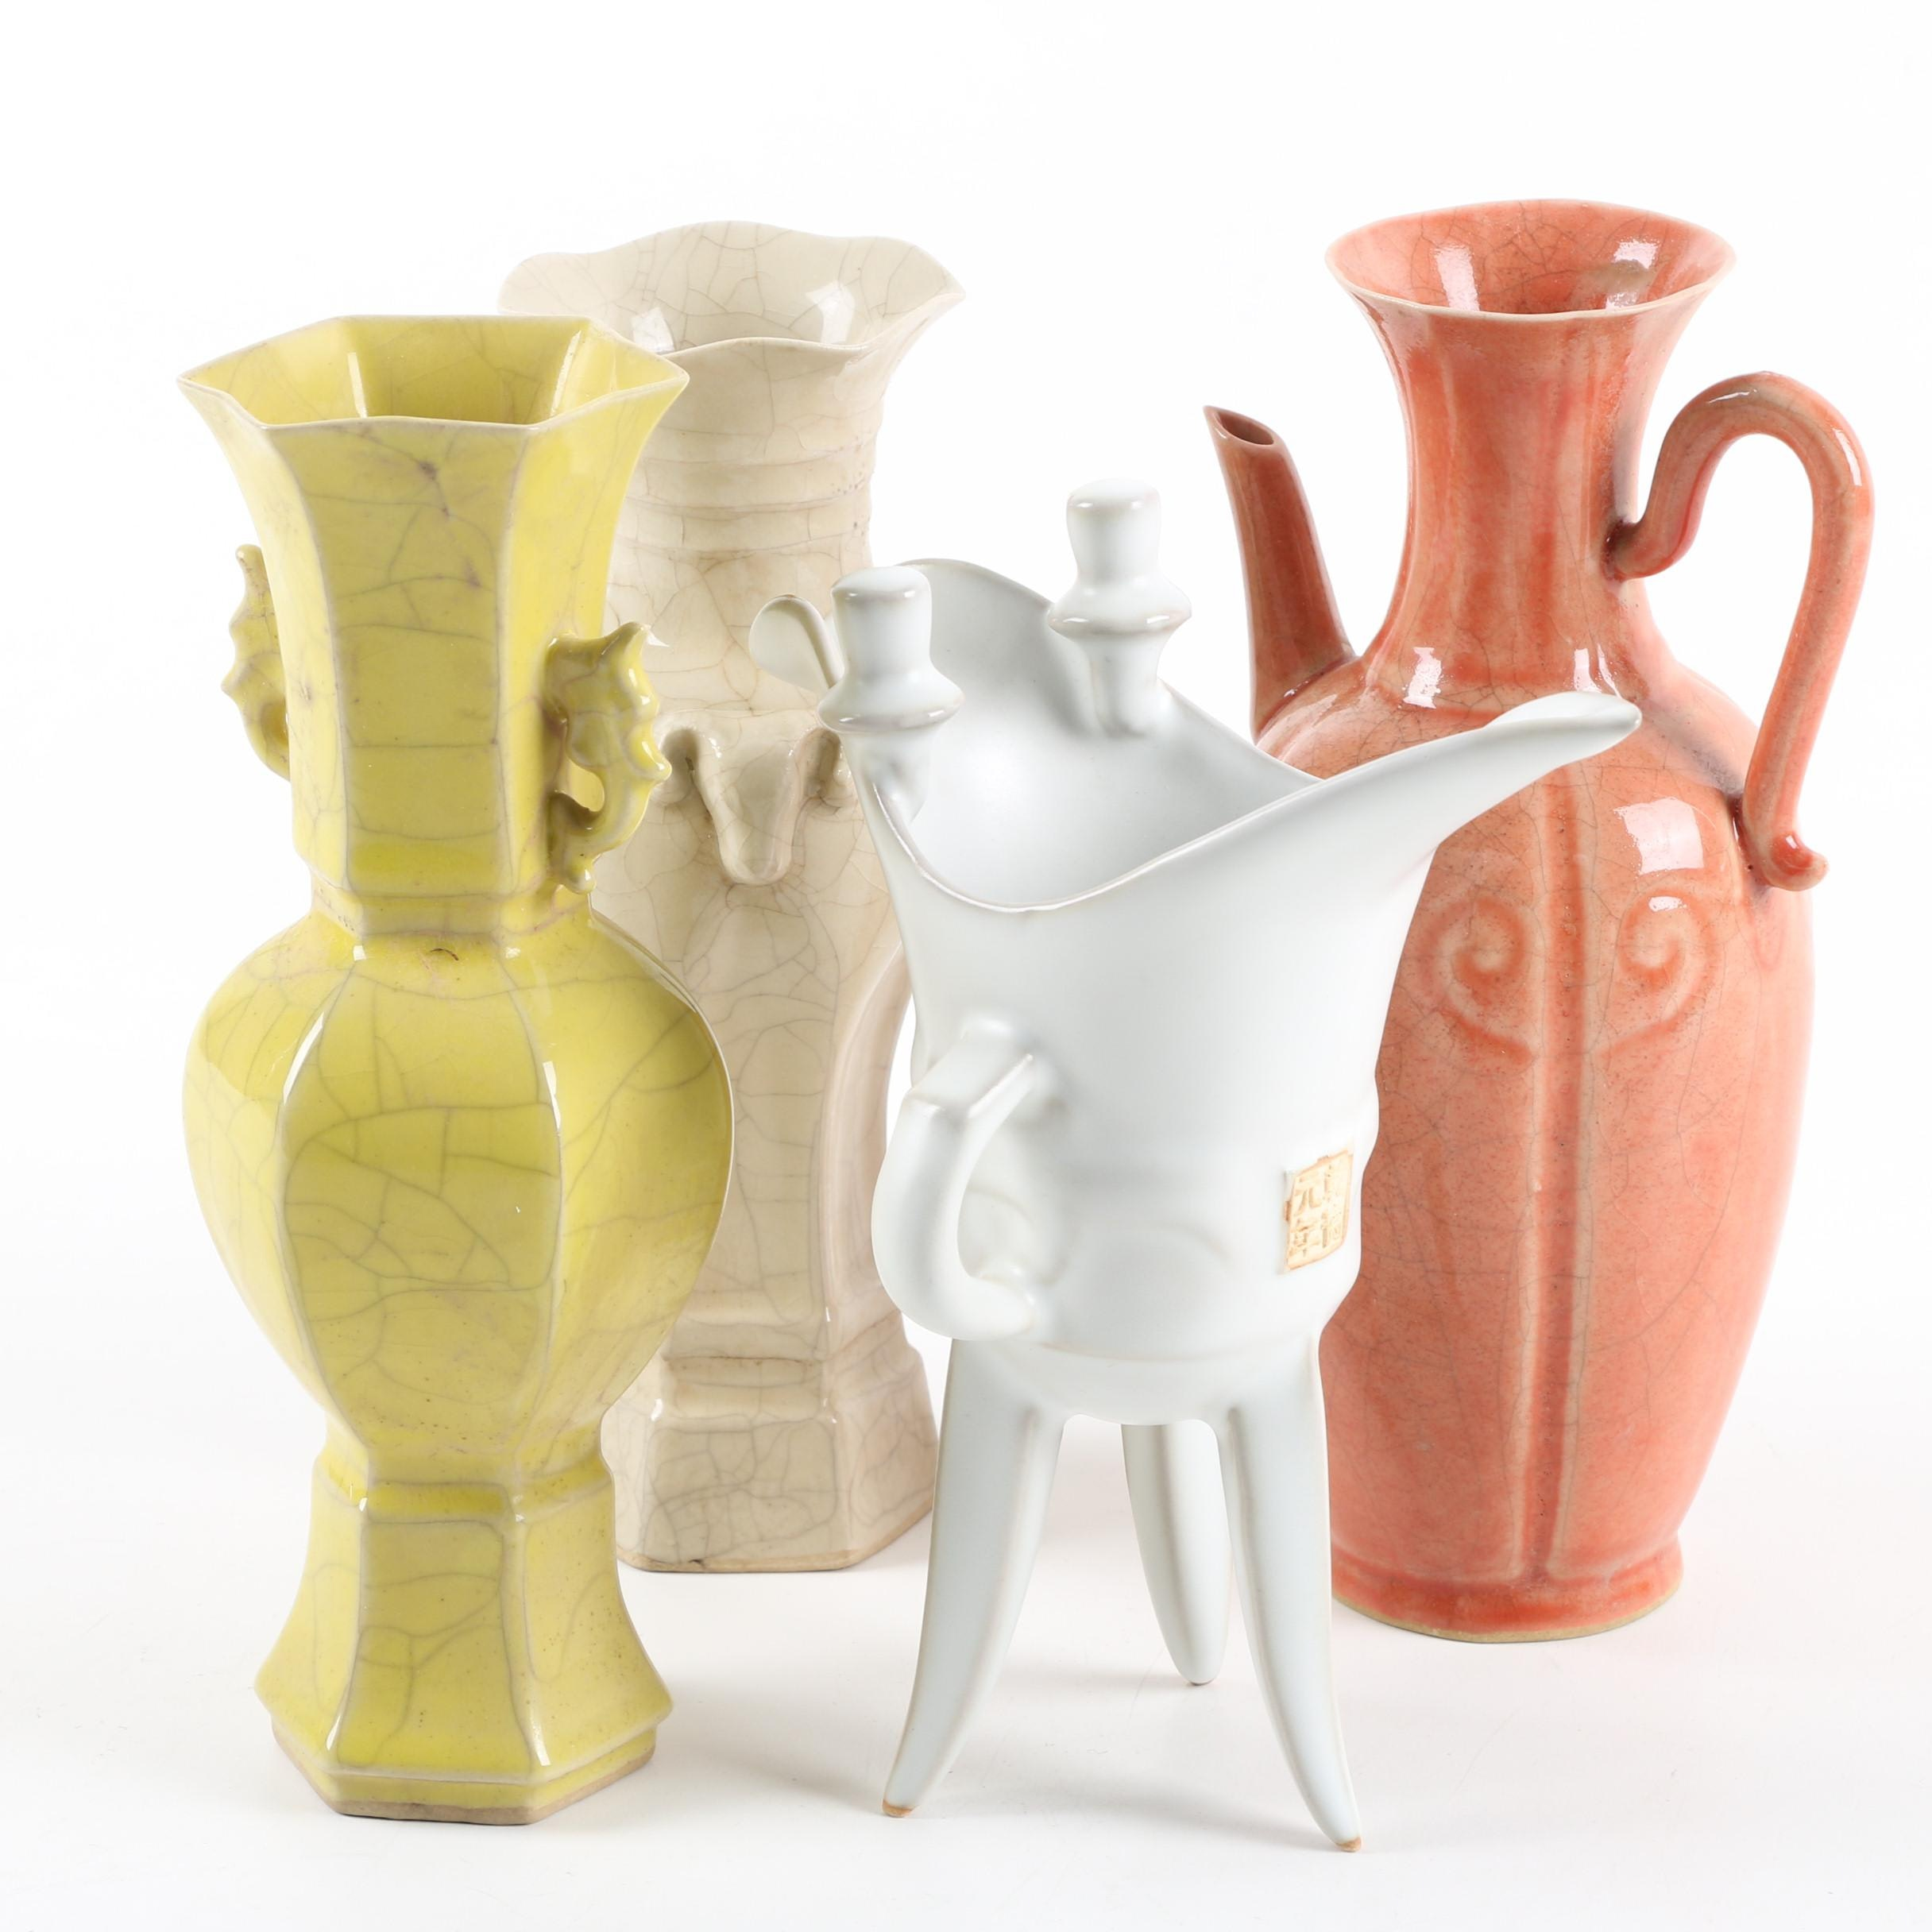 Chinese Ceramic Jue Style Vessel, Vases and Ewer